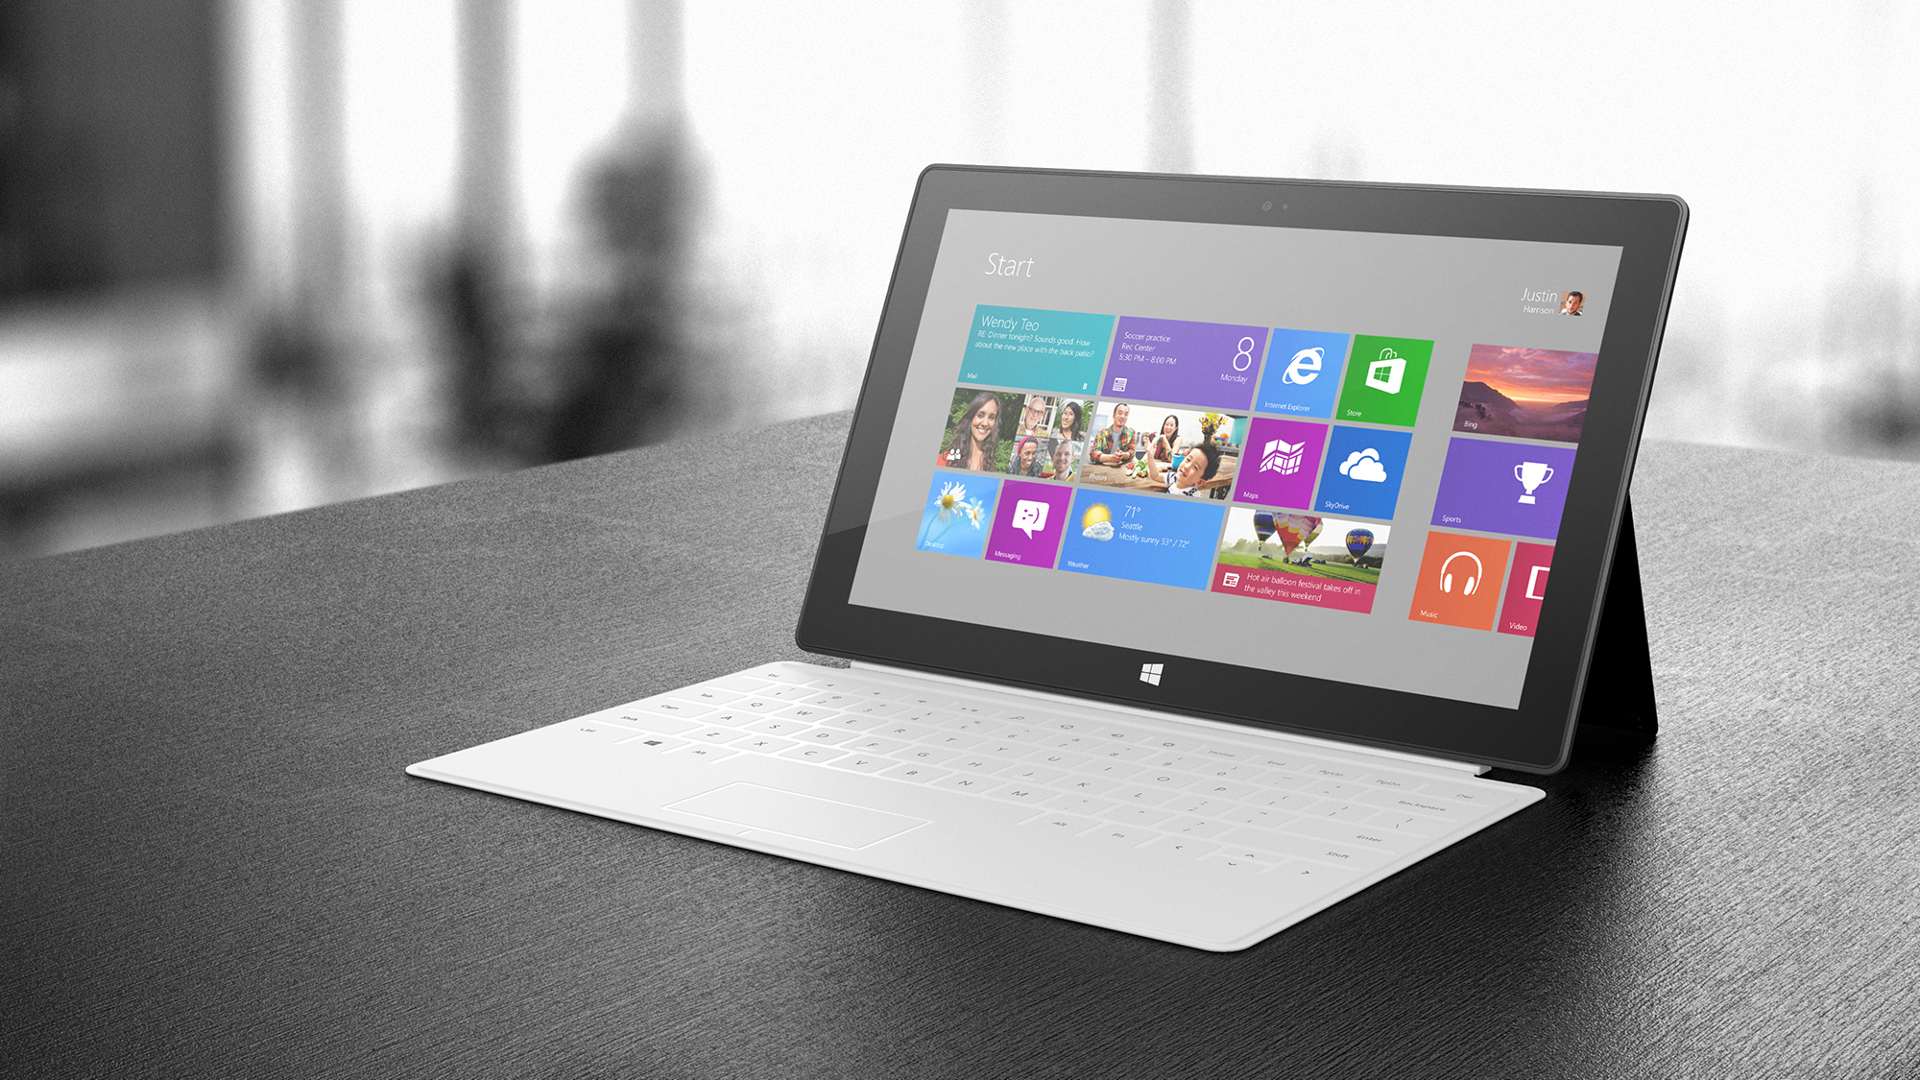 Download an HD Wallpaper with Microsofts Surface Tablet 1920x1080